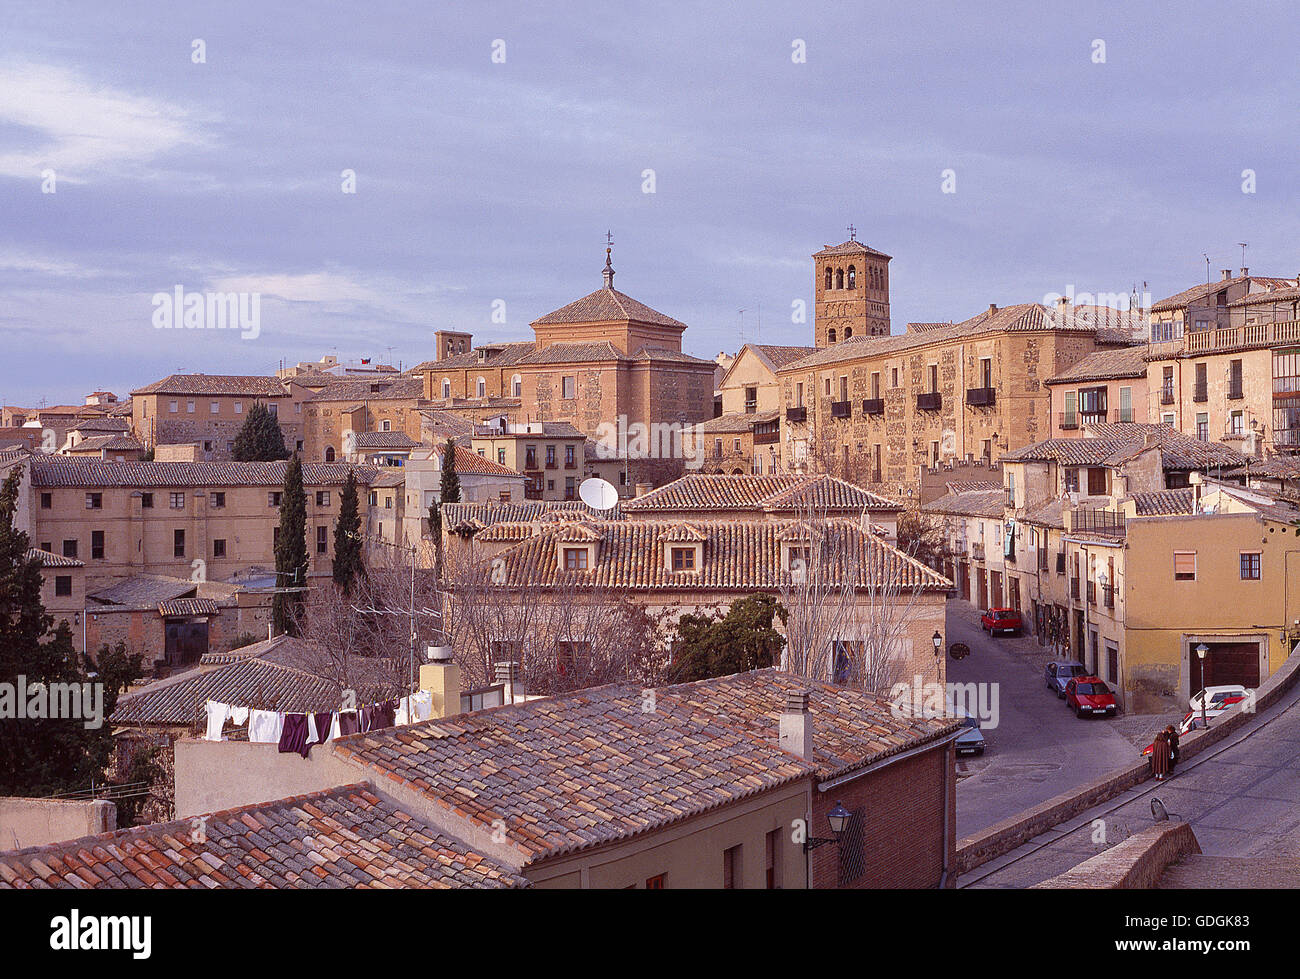 View of the town. Toledo, Spain. - Stock Image